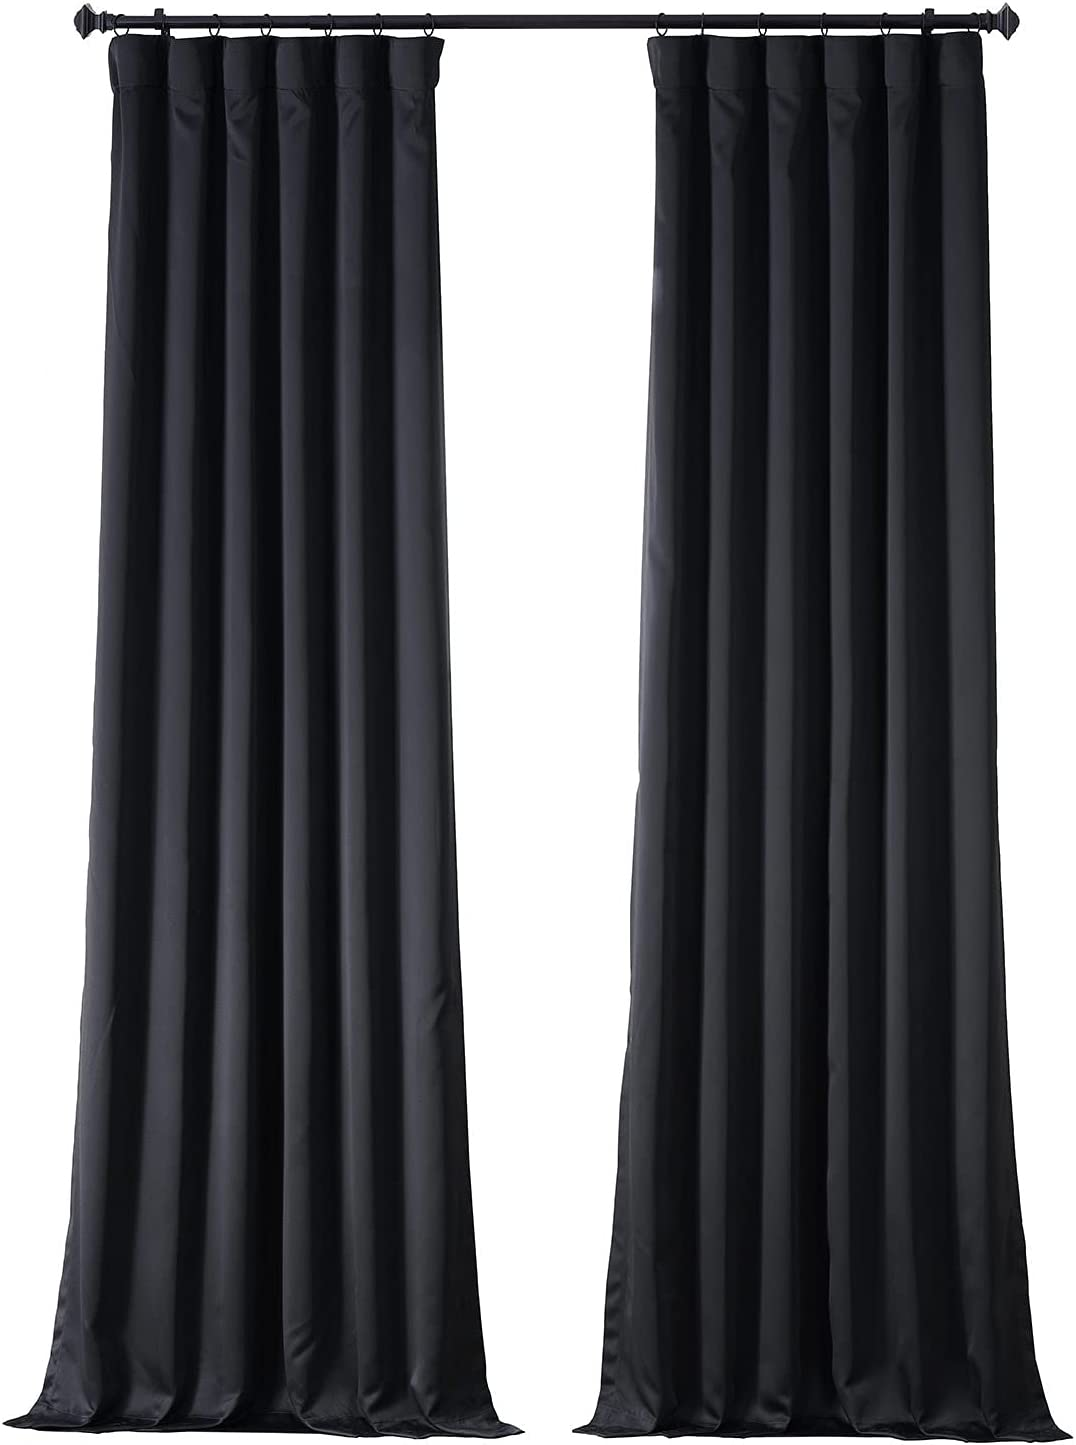 HPD Half Price Drapes Blackout Woven Room Surprise price online shopping Curtain Darkening for